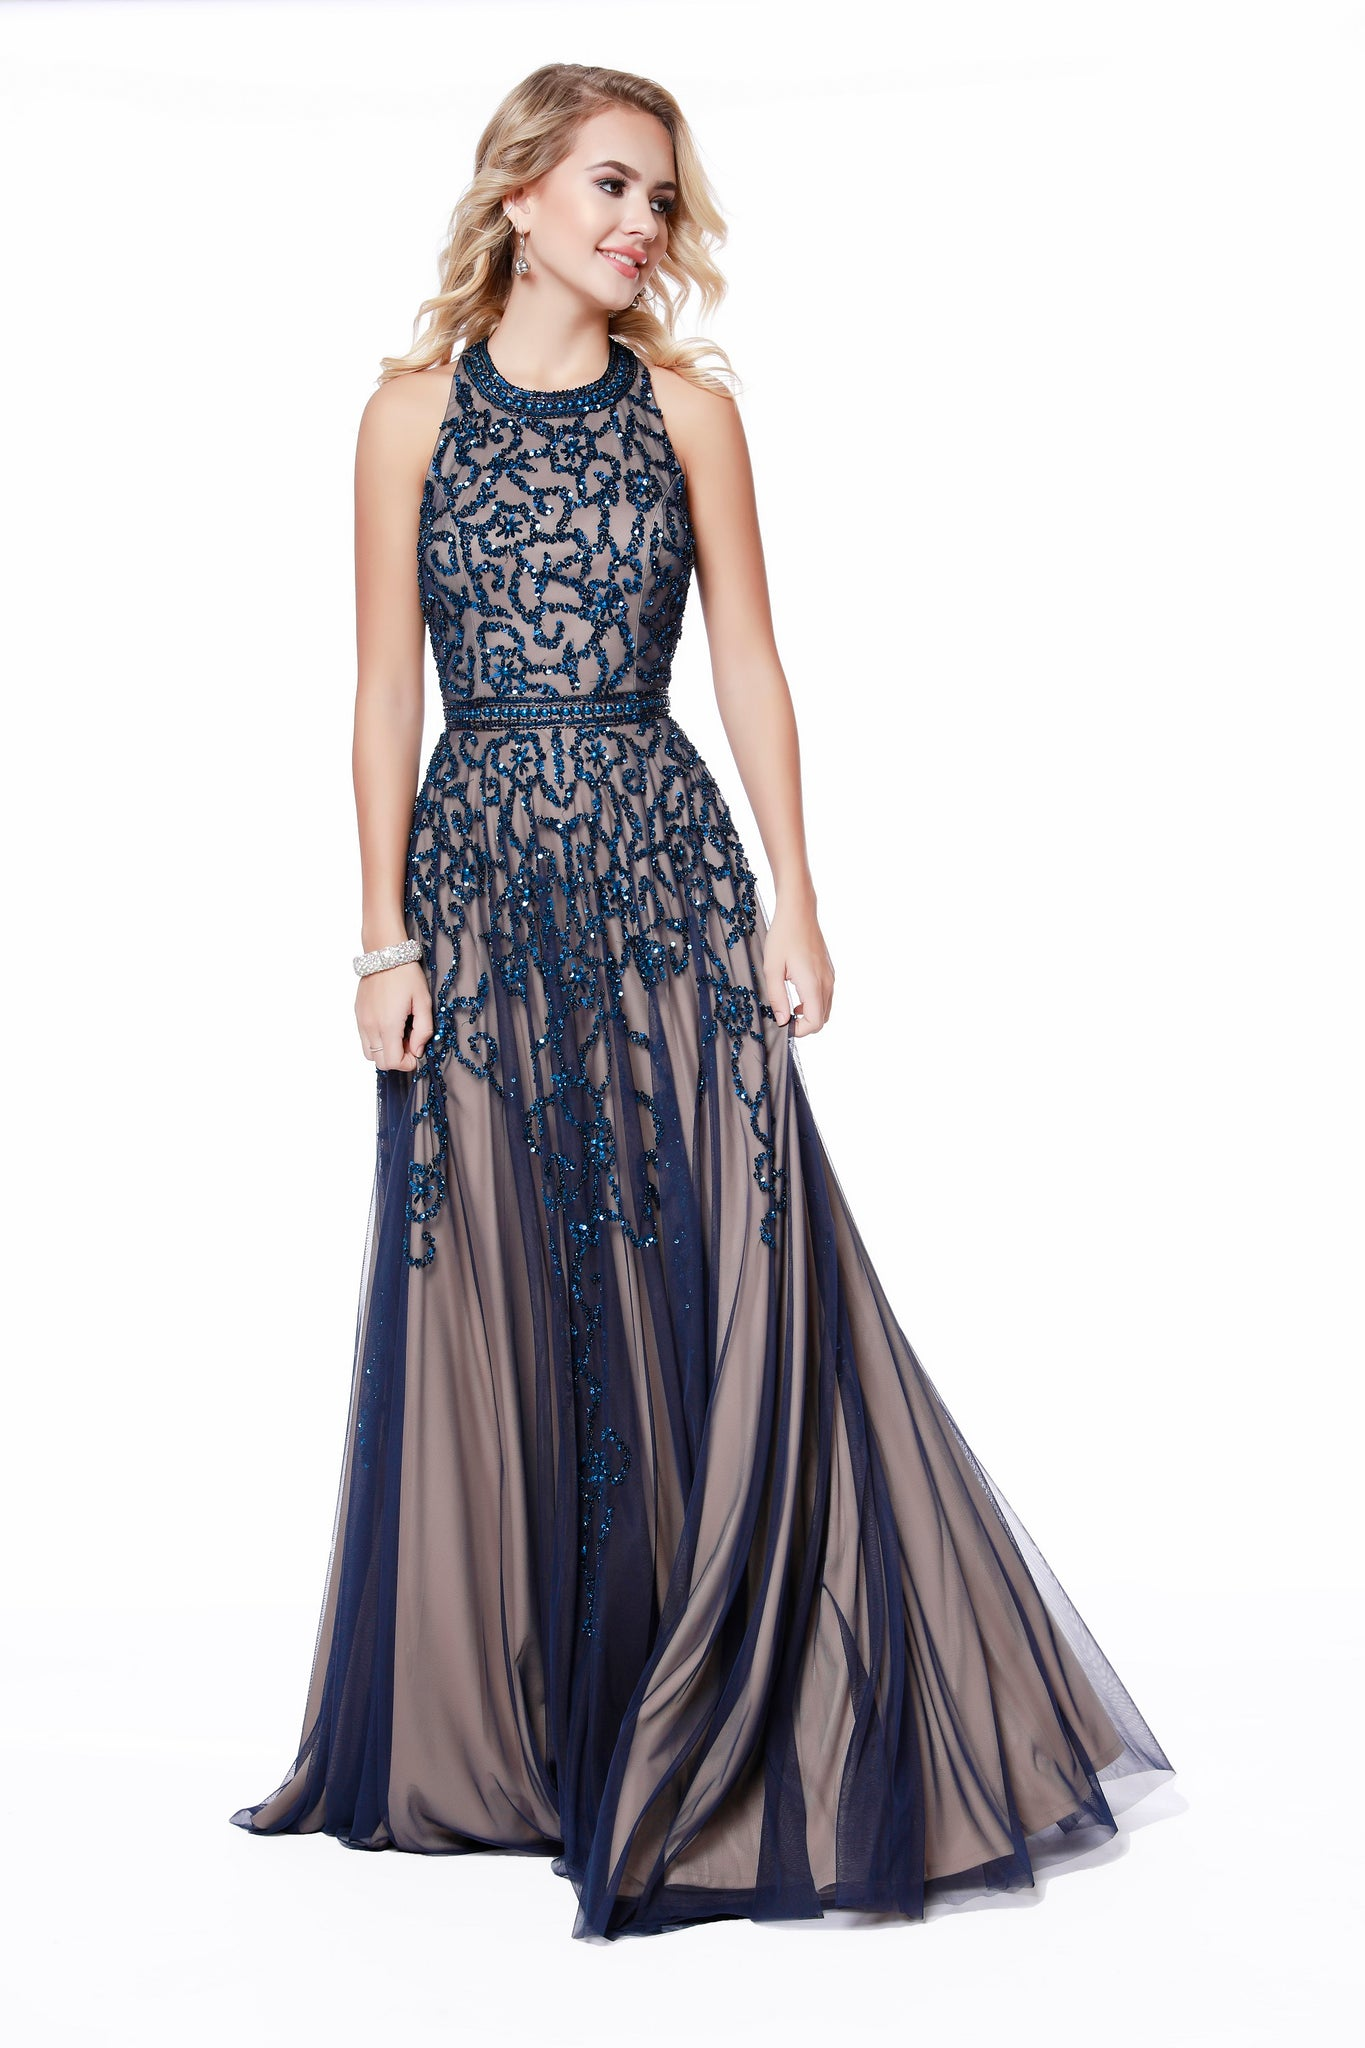 High Neck Embellished Belted Navy Fit to Flare Prom Dress 12205